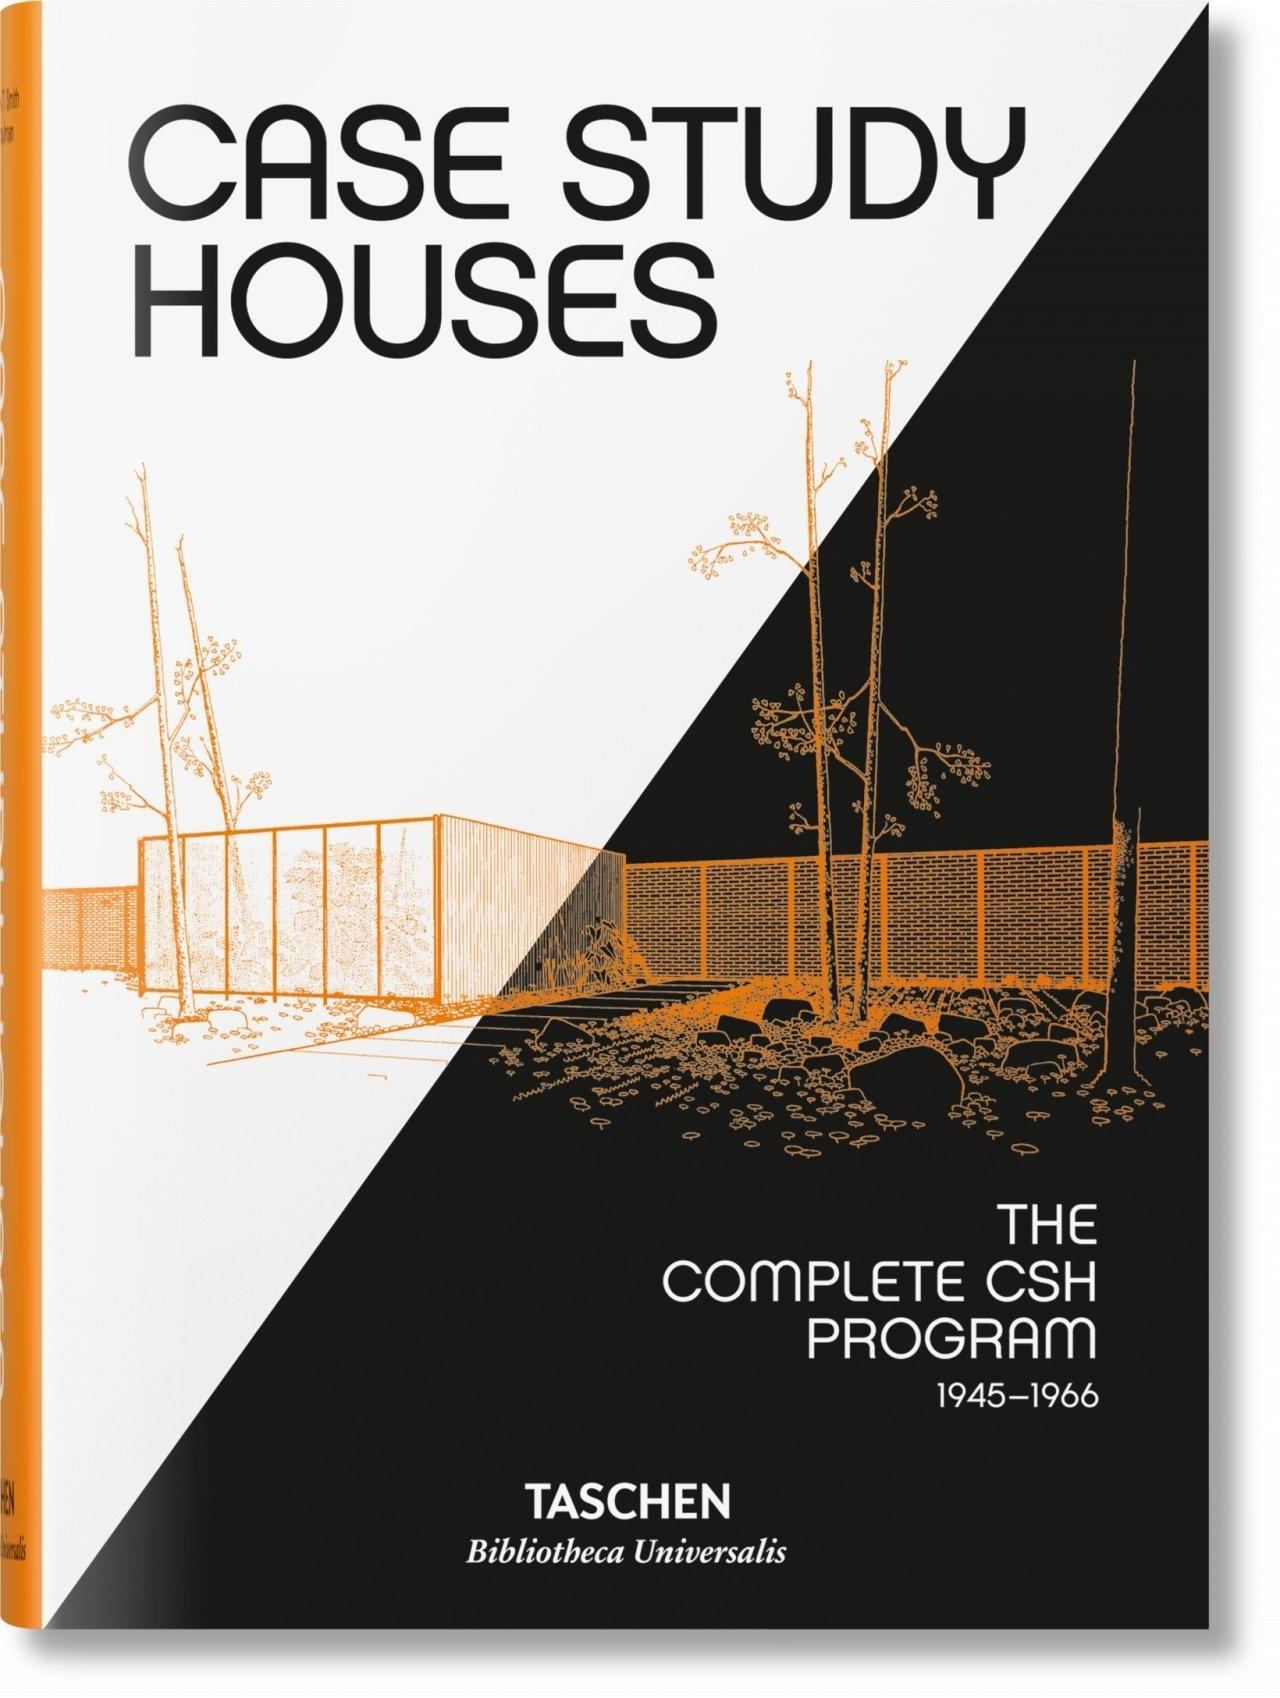 "CASE STUDY HOUSES ""THE COMPLETE CSH PROGRAM 1945-1966"""